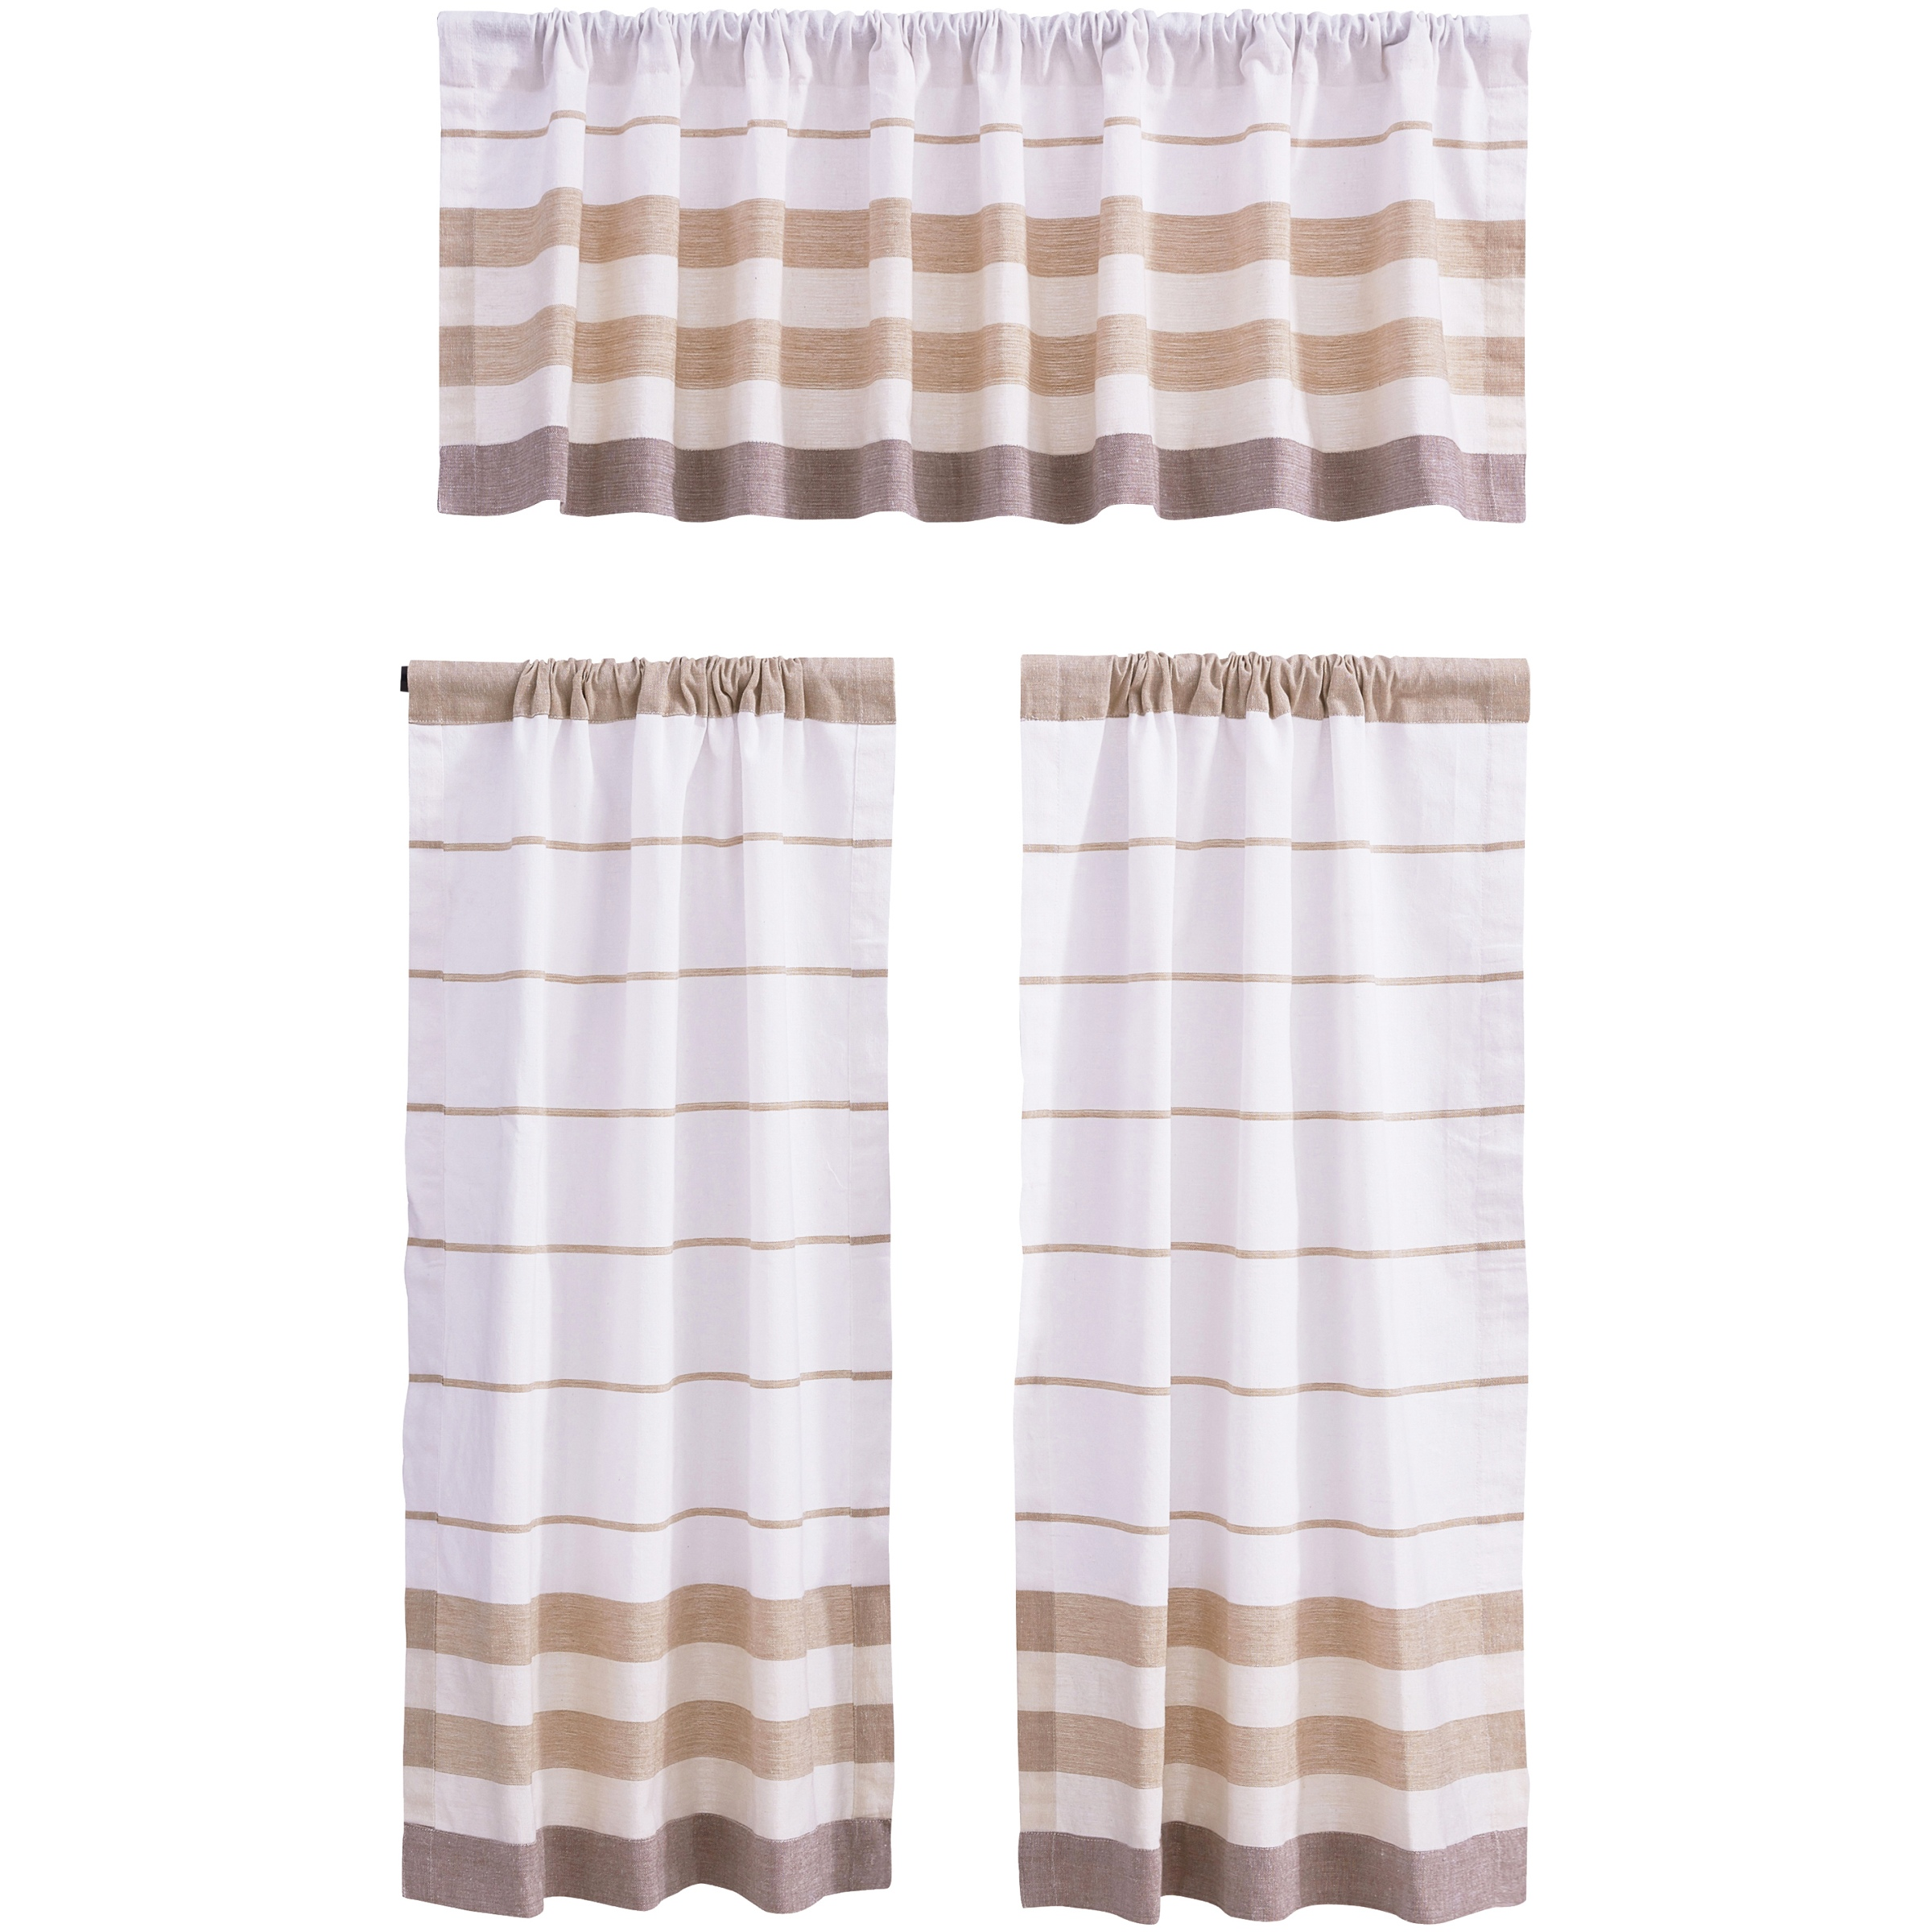 Better Homes & Gardens Yarn-Dyed Dobby Double Stripe Window Valance and Tiers